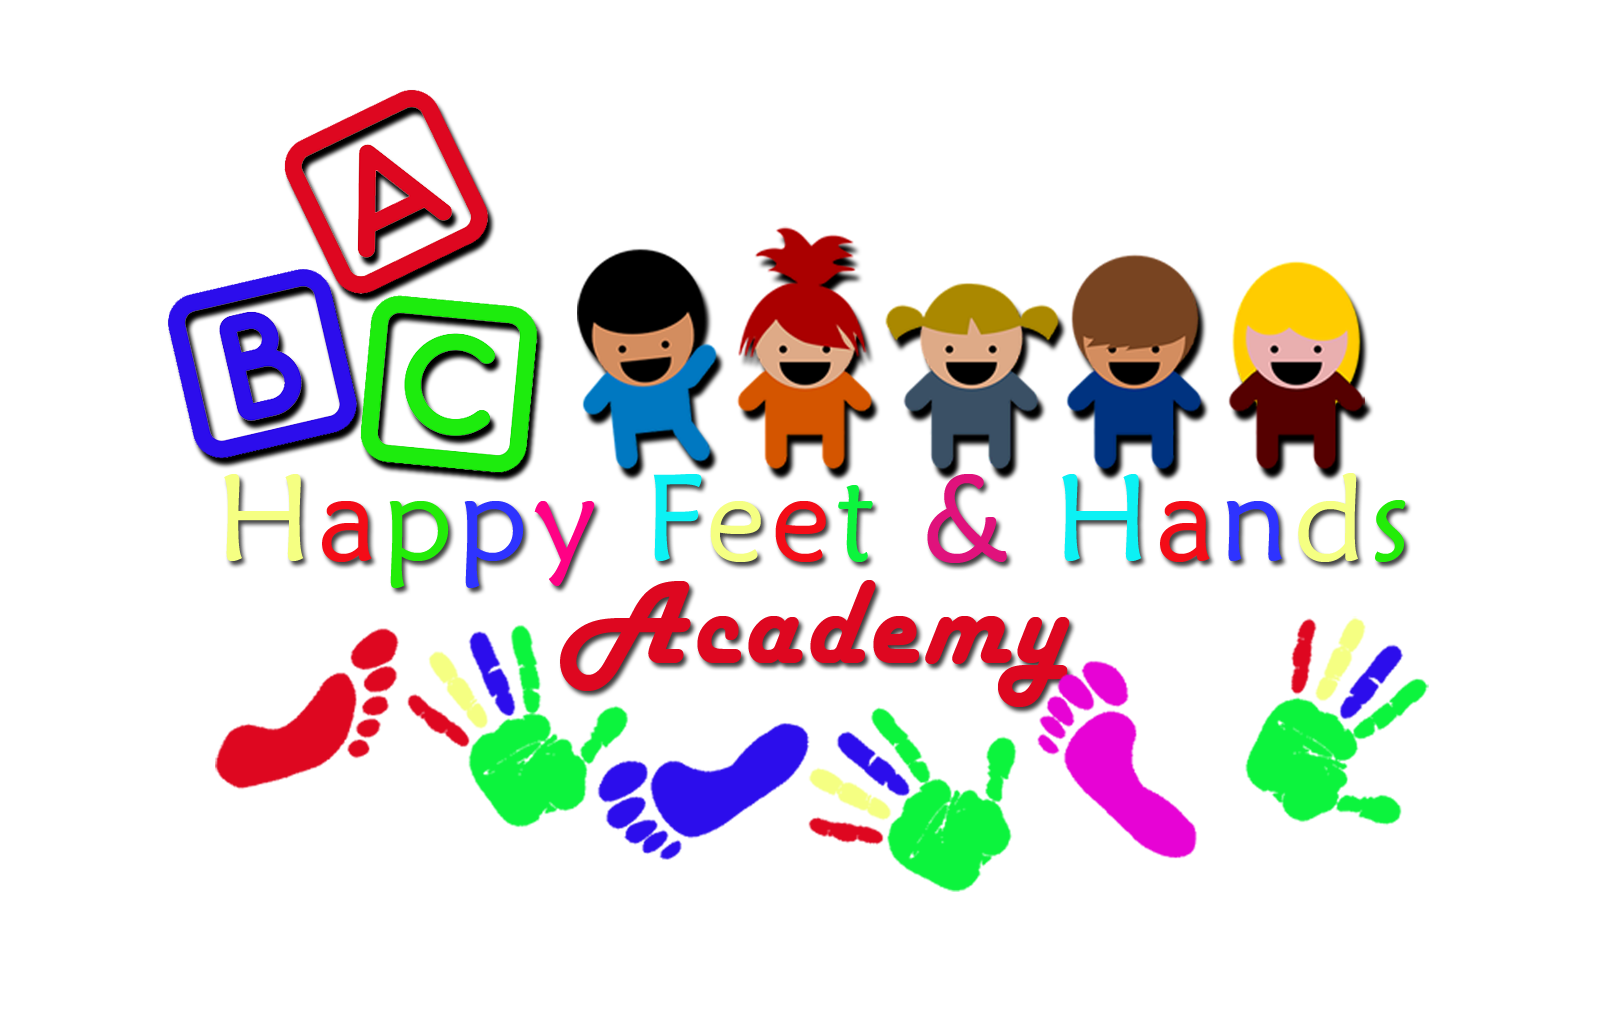 Home daycare logo. Foot clipart one foot